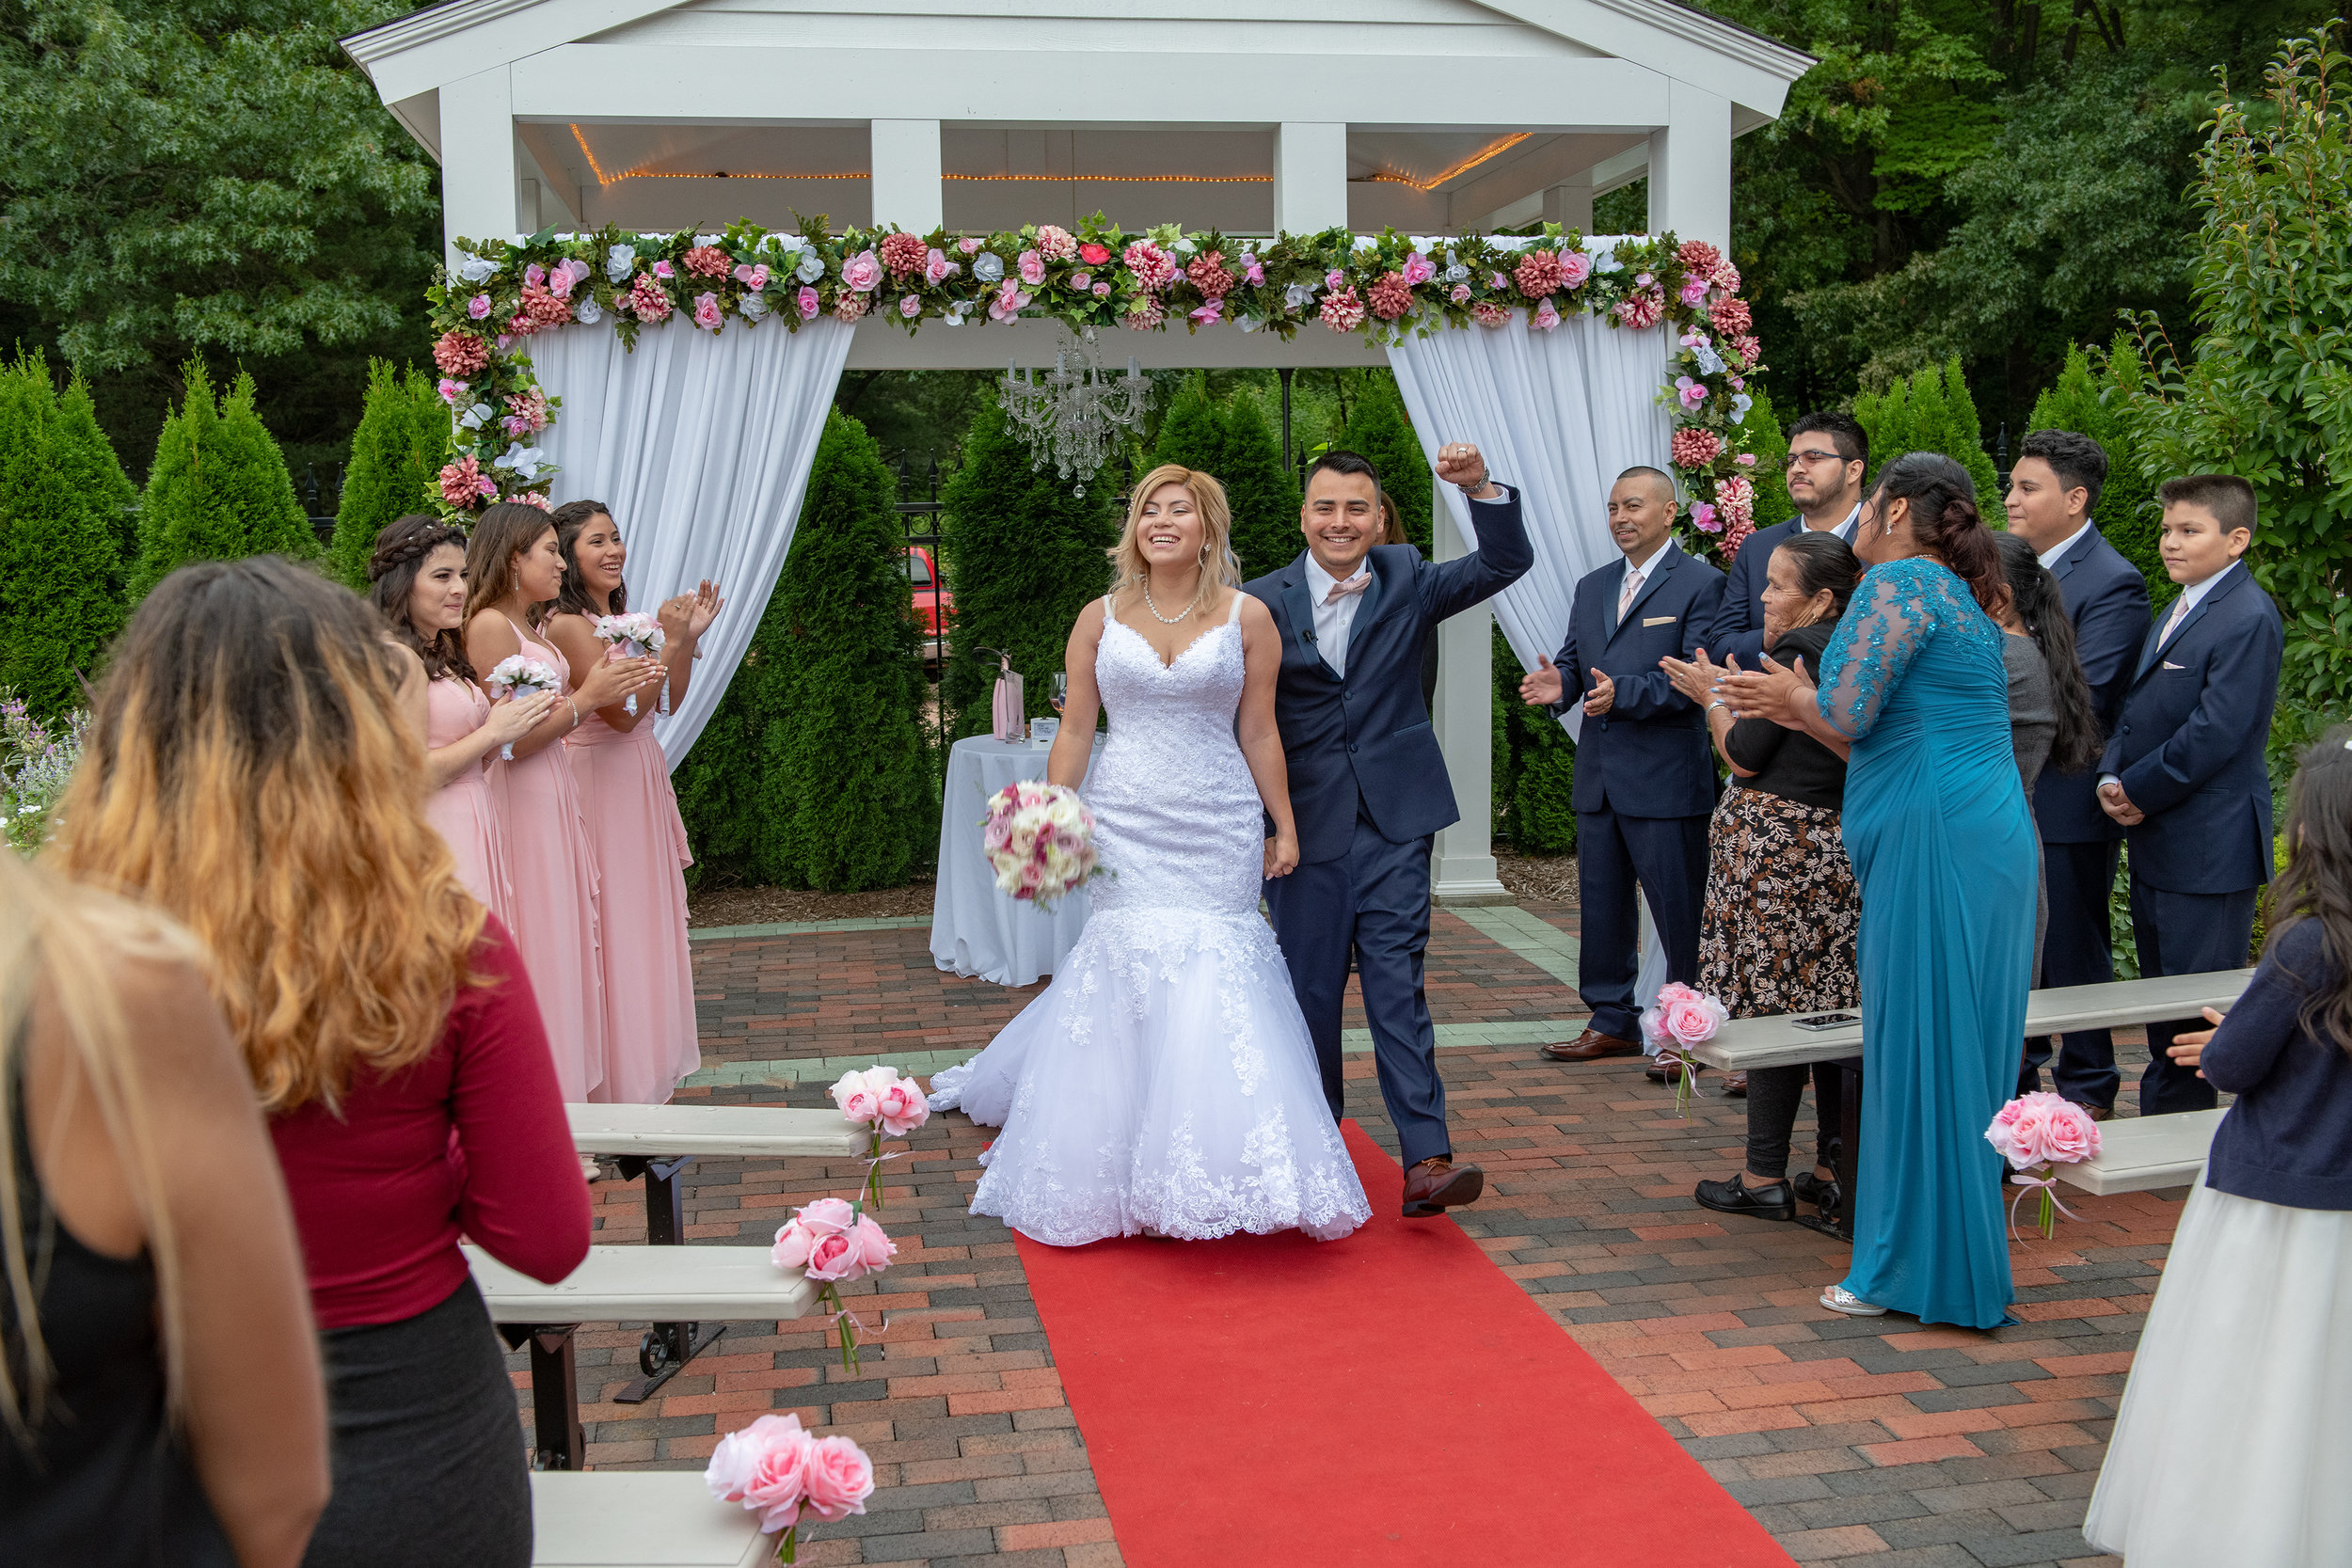 THE WEDDING CEREMONY AT WICKHAM PARK IS OVER THE BRIDE AND GROOM EXIT THE CEREMONY.jpg